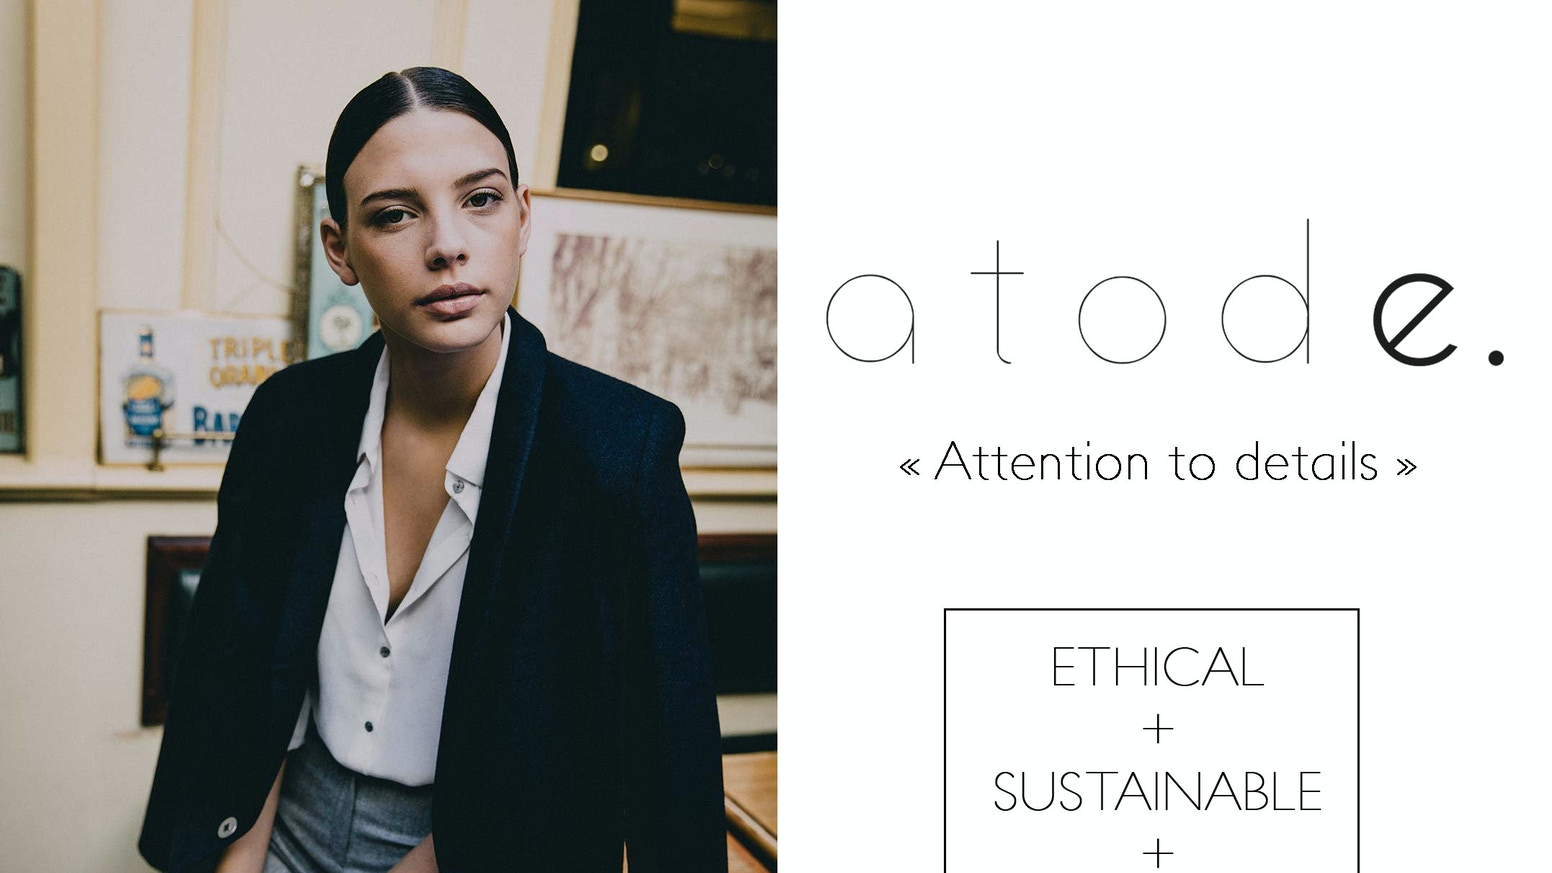 31a971a8c51b ATODE - 1st french brand that combines fashion and ethics by Caro Za ...